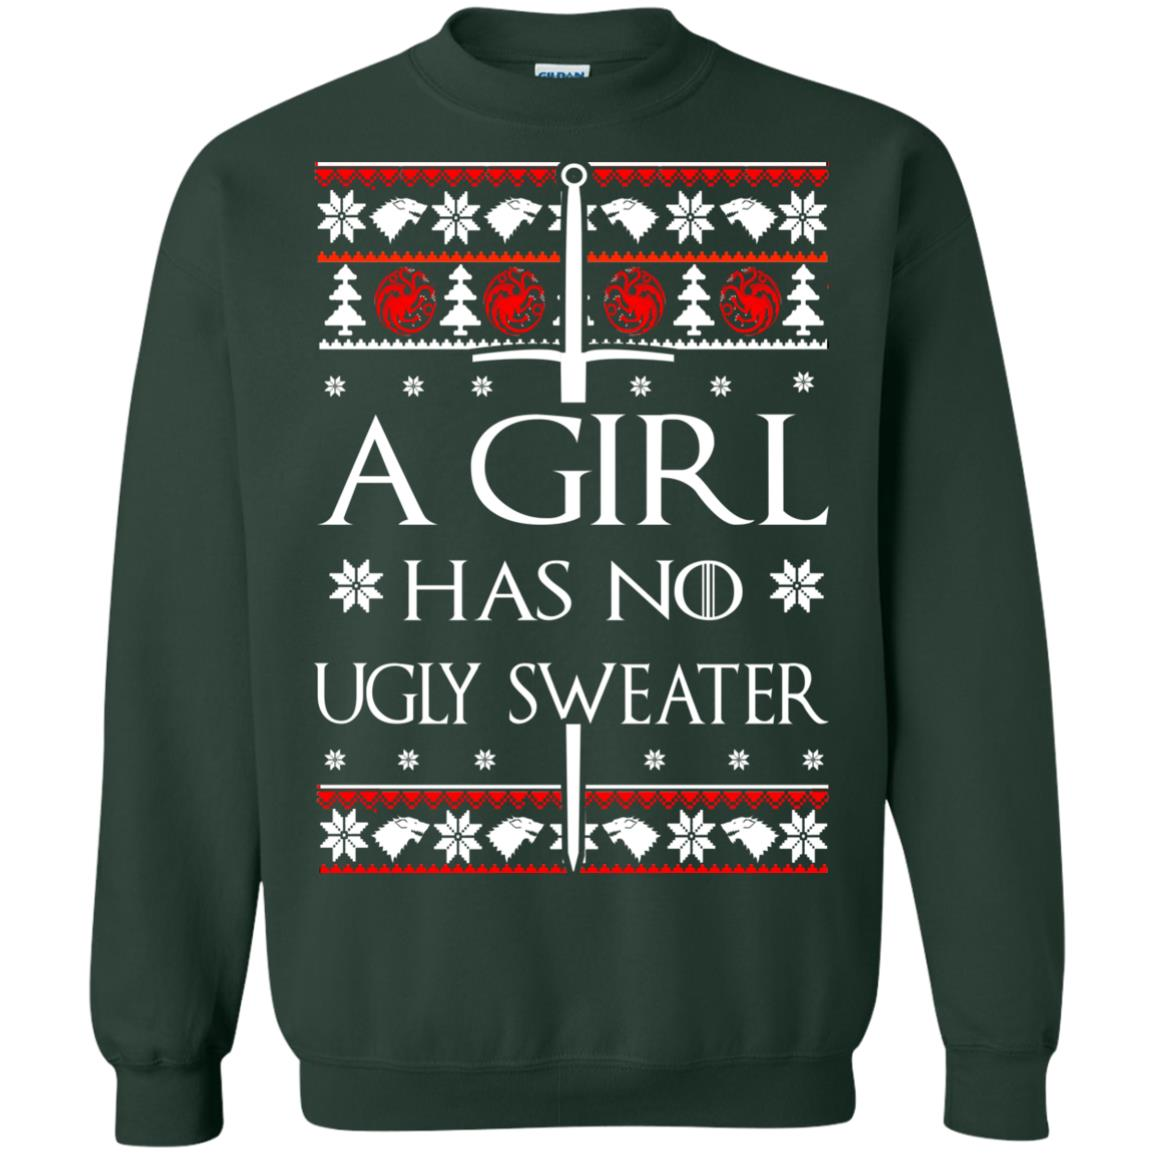 image 1508 - A Girl Has no Ugly Sweater, Shirt, Christmas Sweatshirt Game Of Thrones